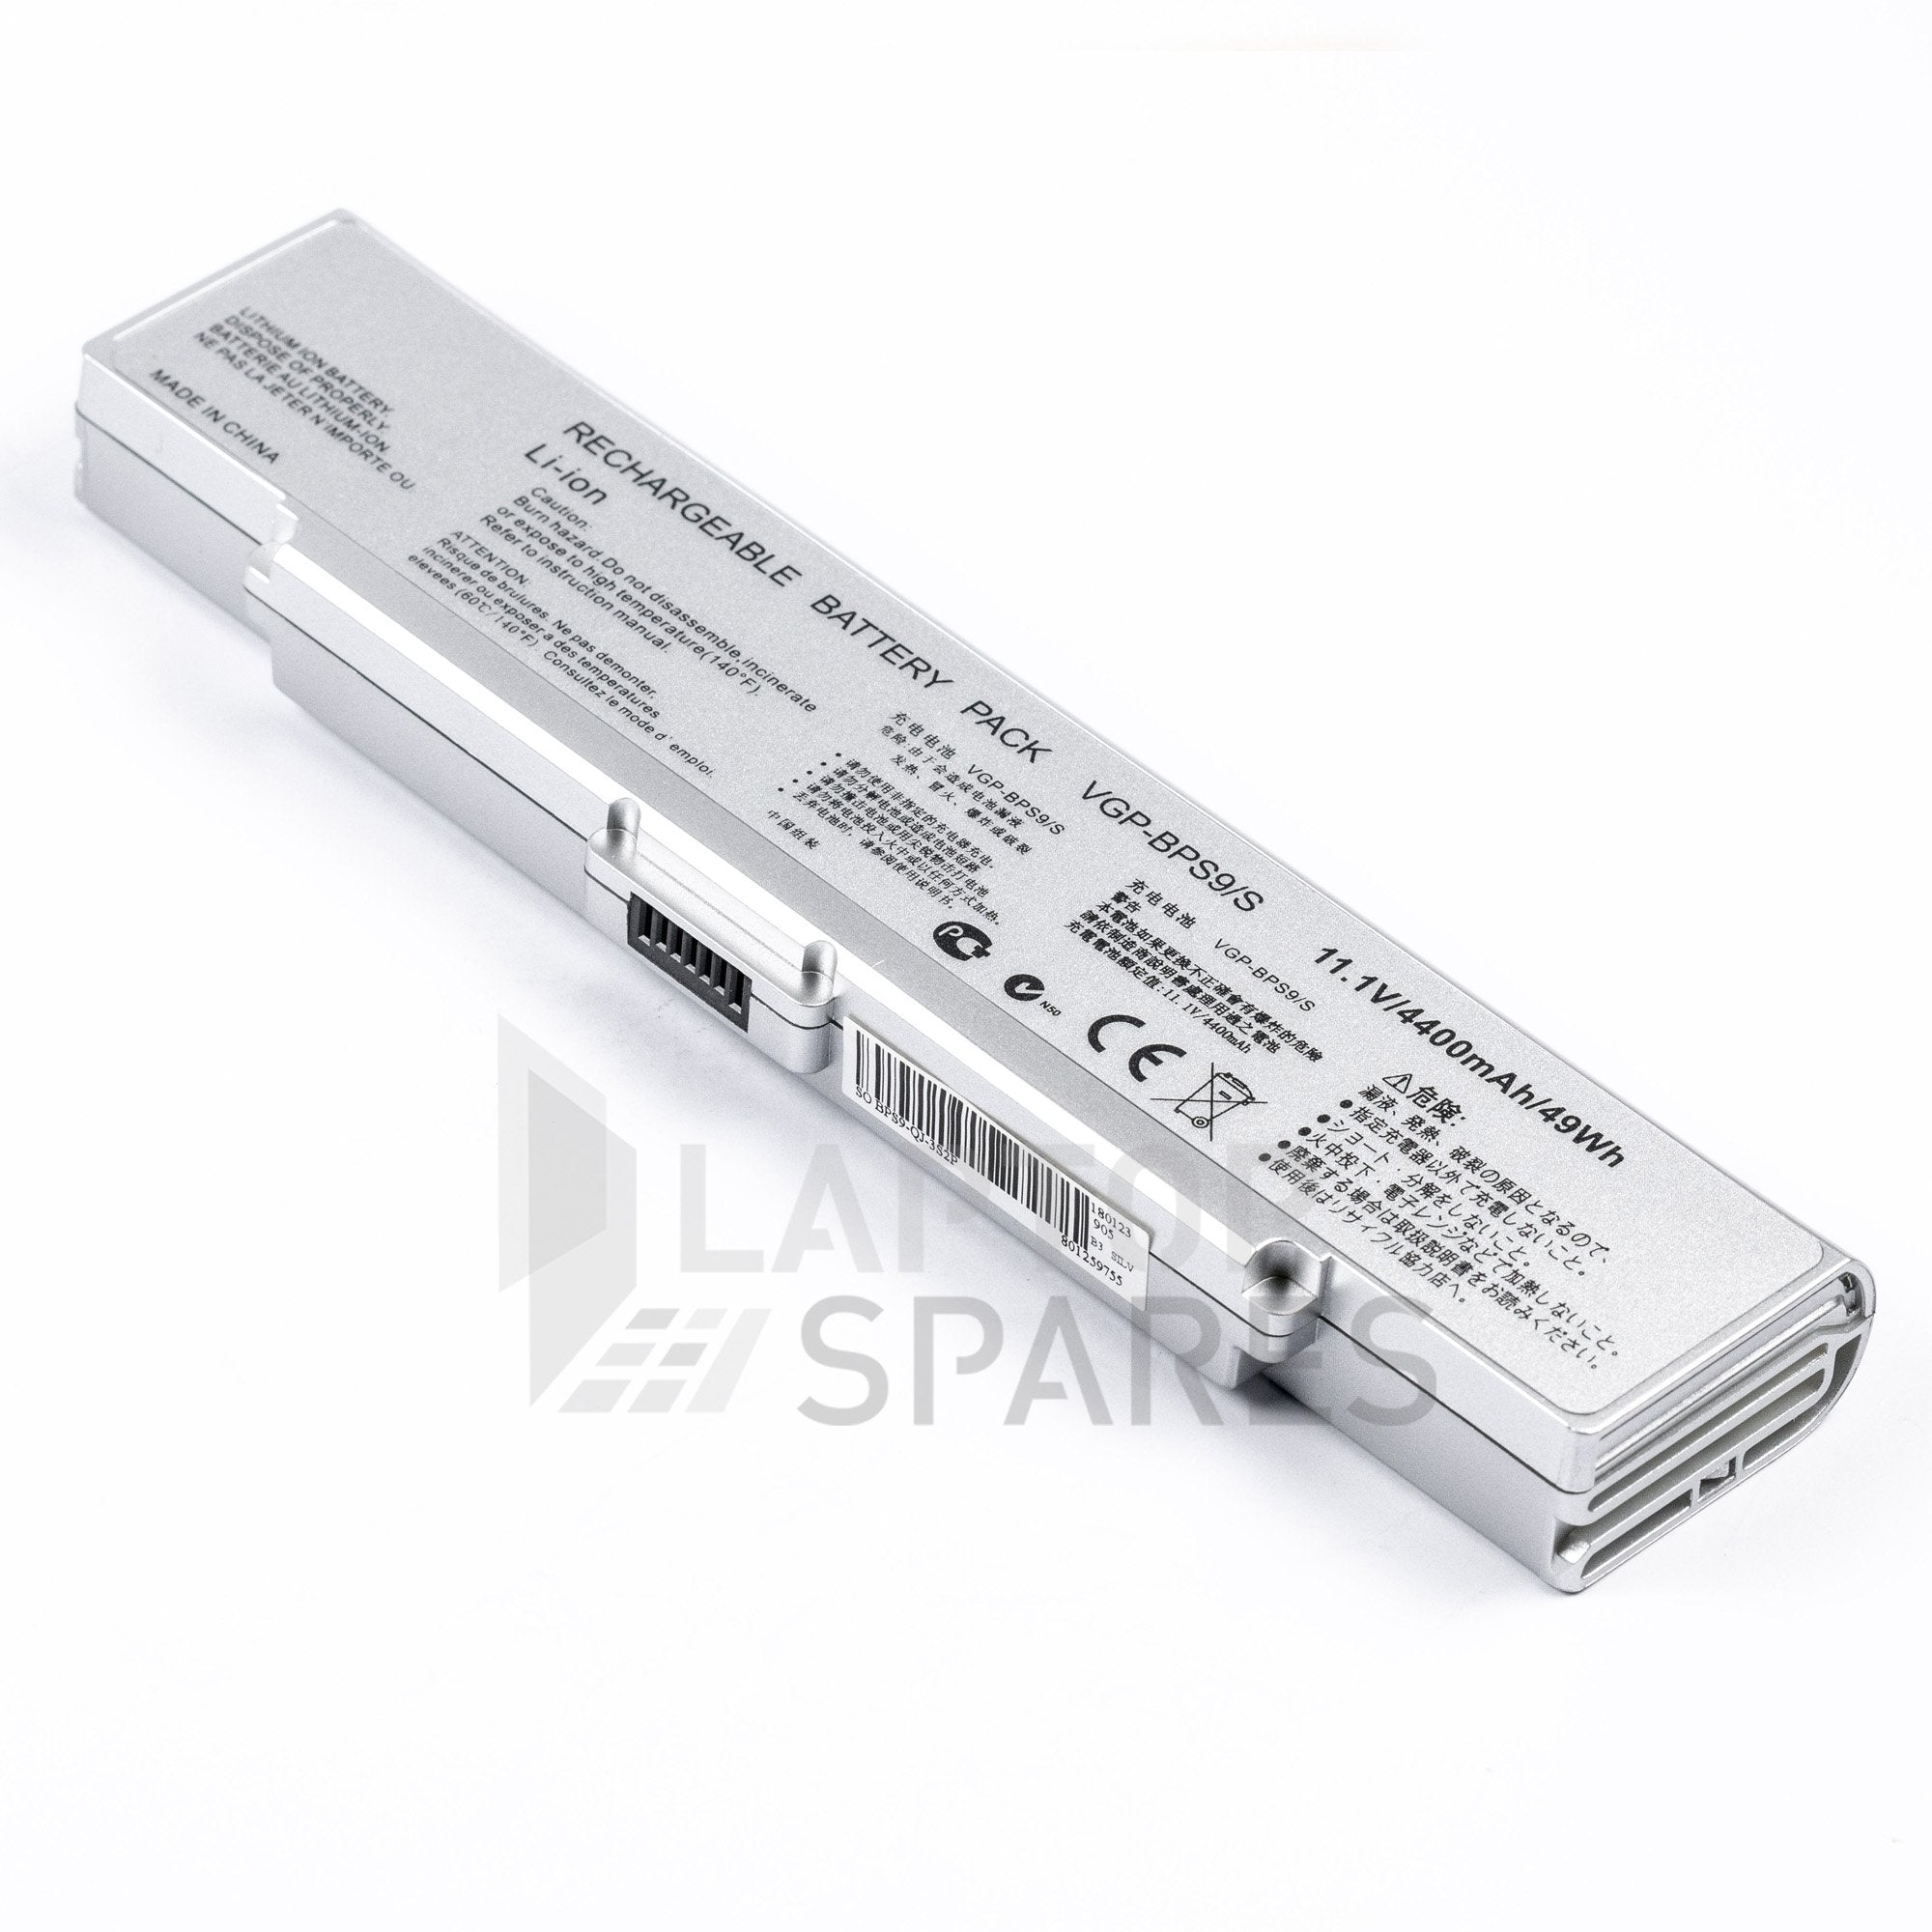 Sony VAIO VGN-CR21E/L 4400mAh 6 Cell Battery